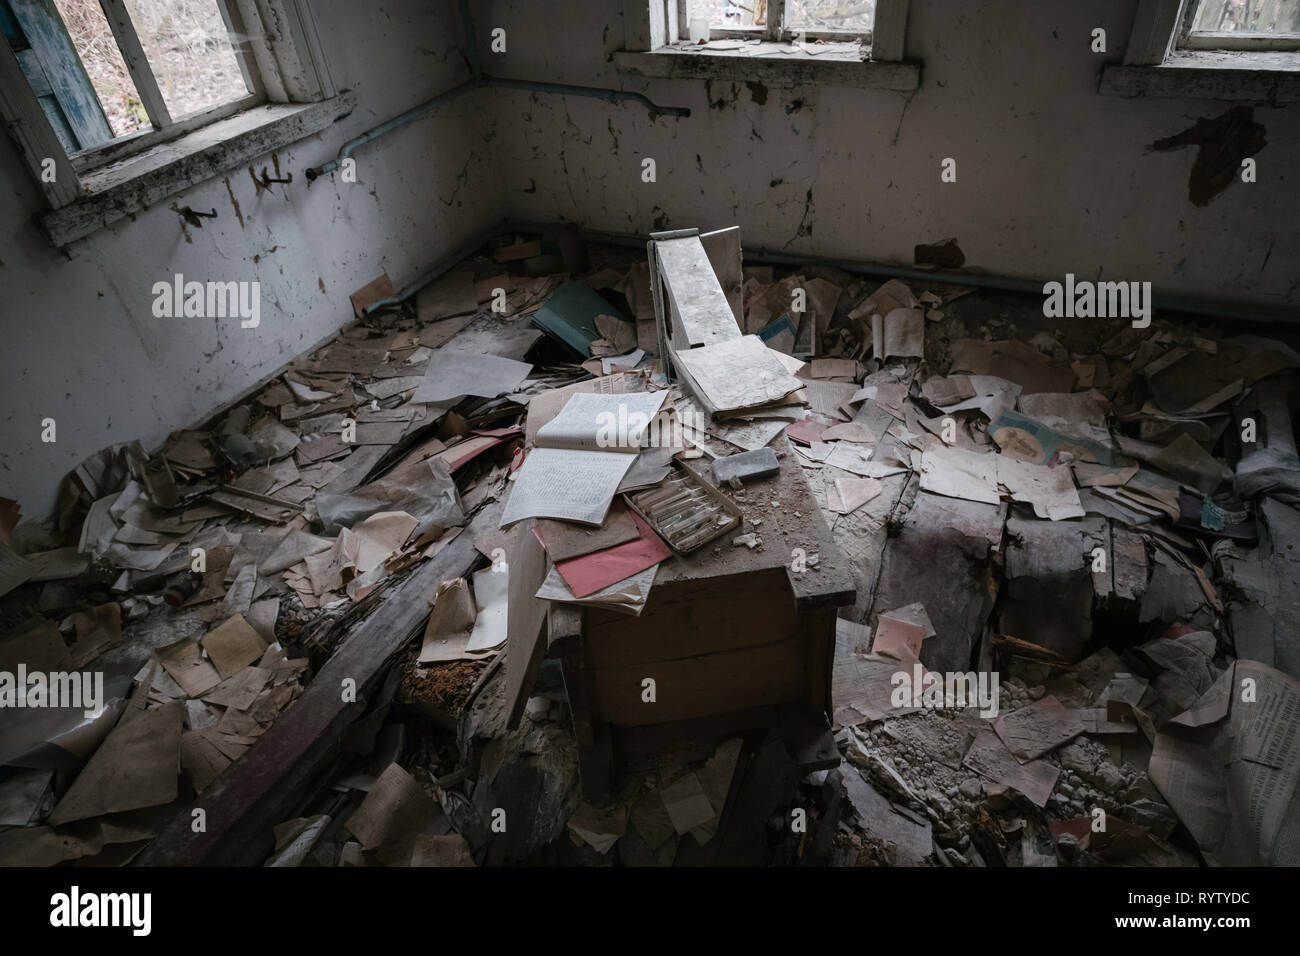 Abandoned village in the Chernobyl nuclear power plant exclusion zone - Stock Image